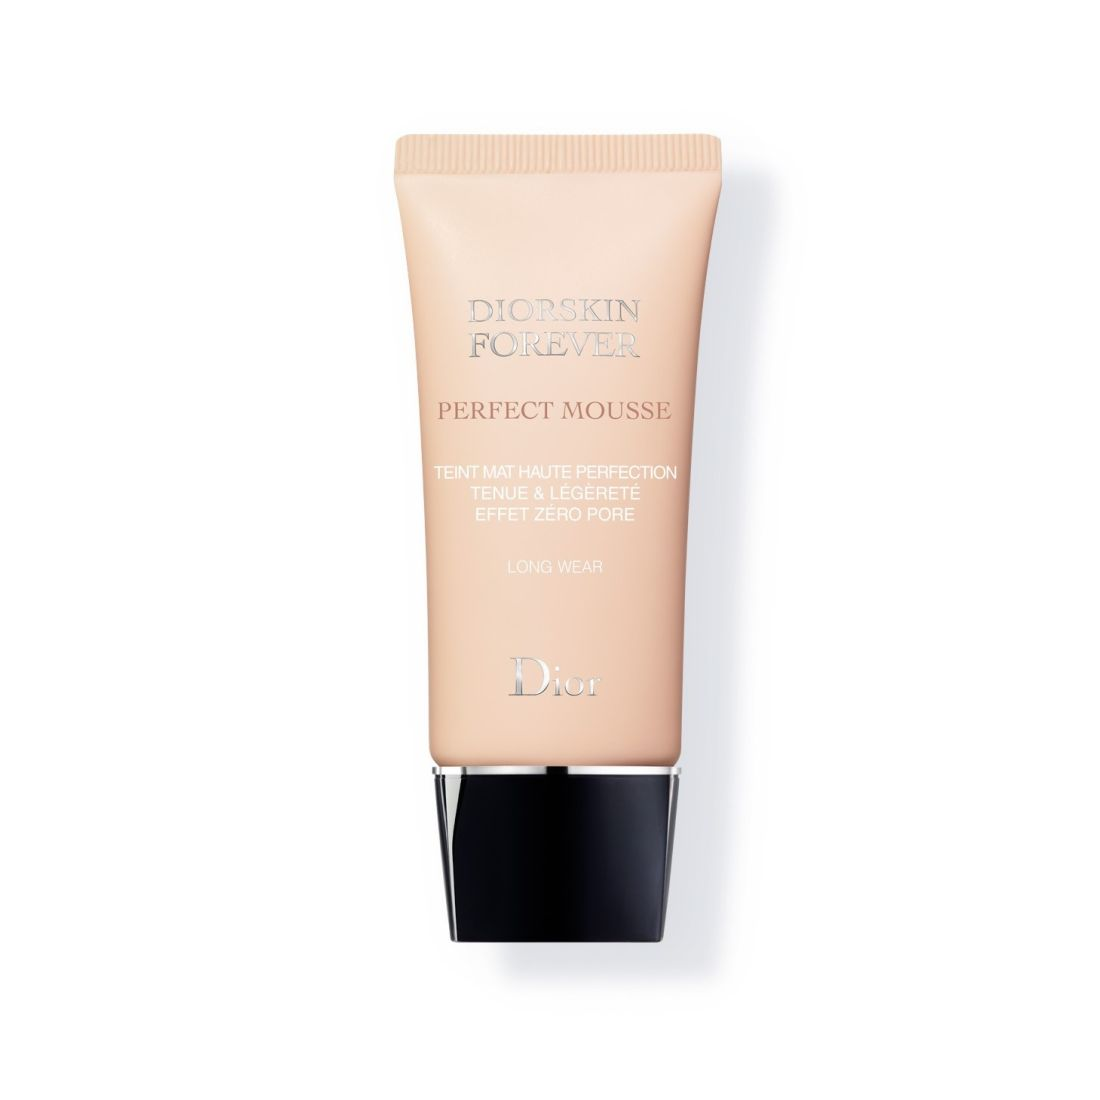 Christian Dior Diorskin Forever Perfect Mousse Long Wear Foundation 30ml 020 Light Beige